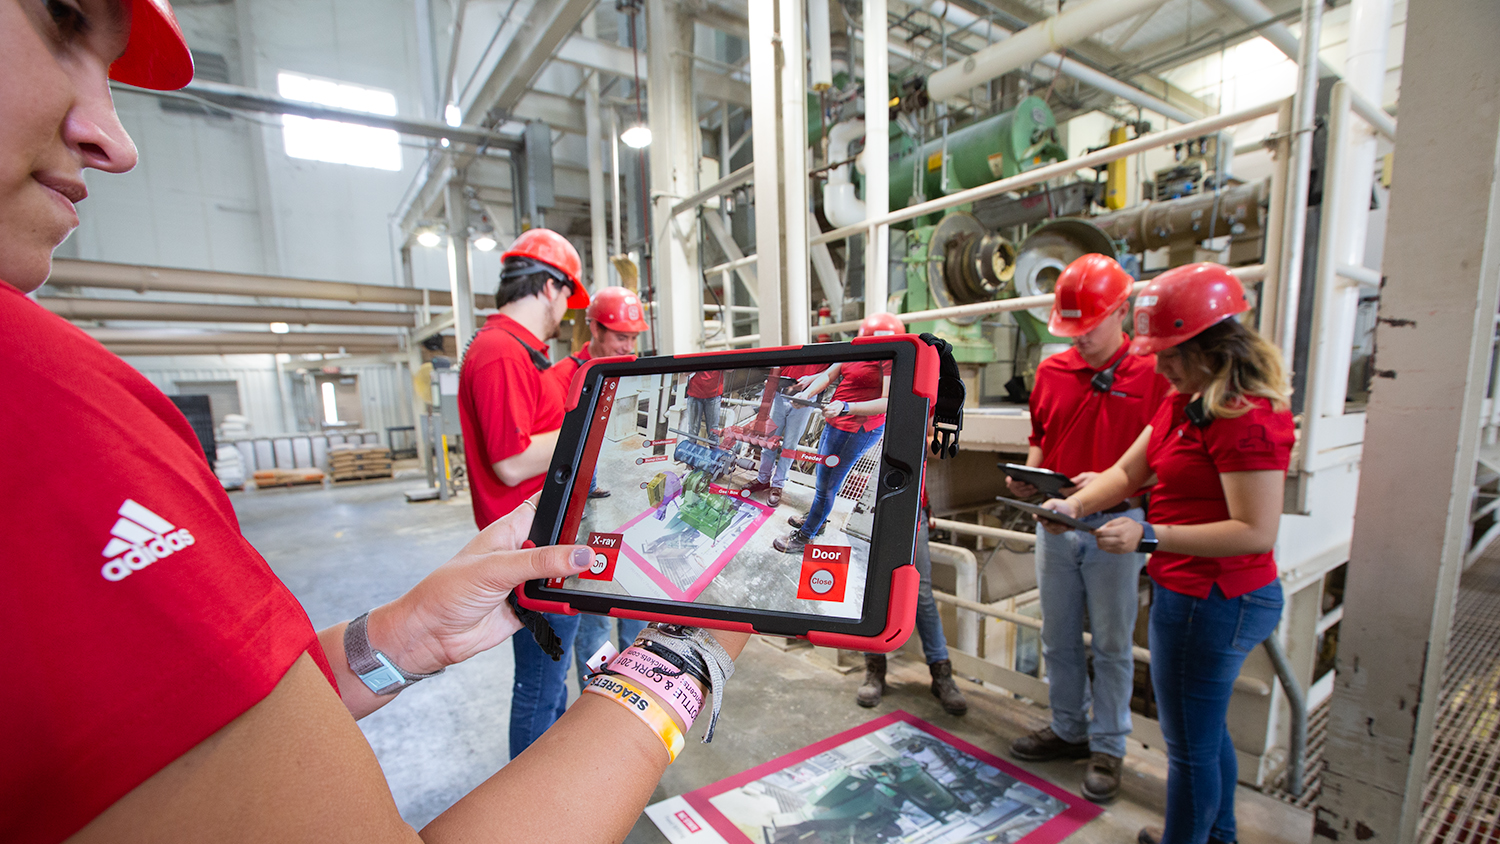 Taken inside the feed mill, a person holds a tablet with the AR experience loaded. There are other students gathered around a map of the Feed Mill and on the screen you can see the AR experience on the mat.